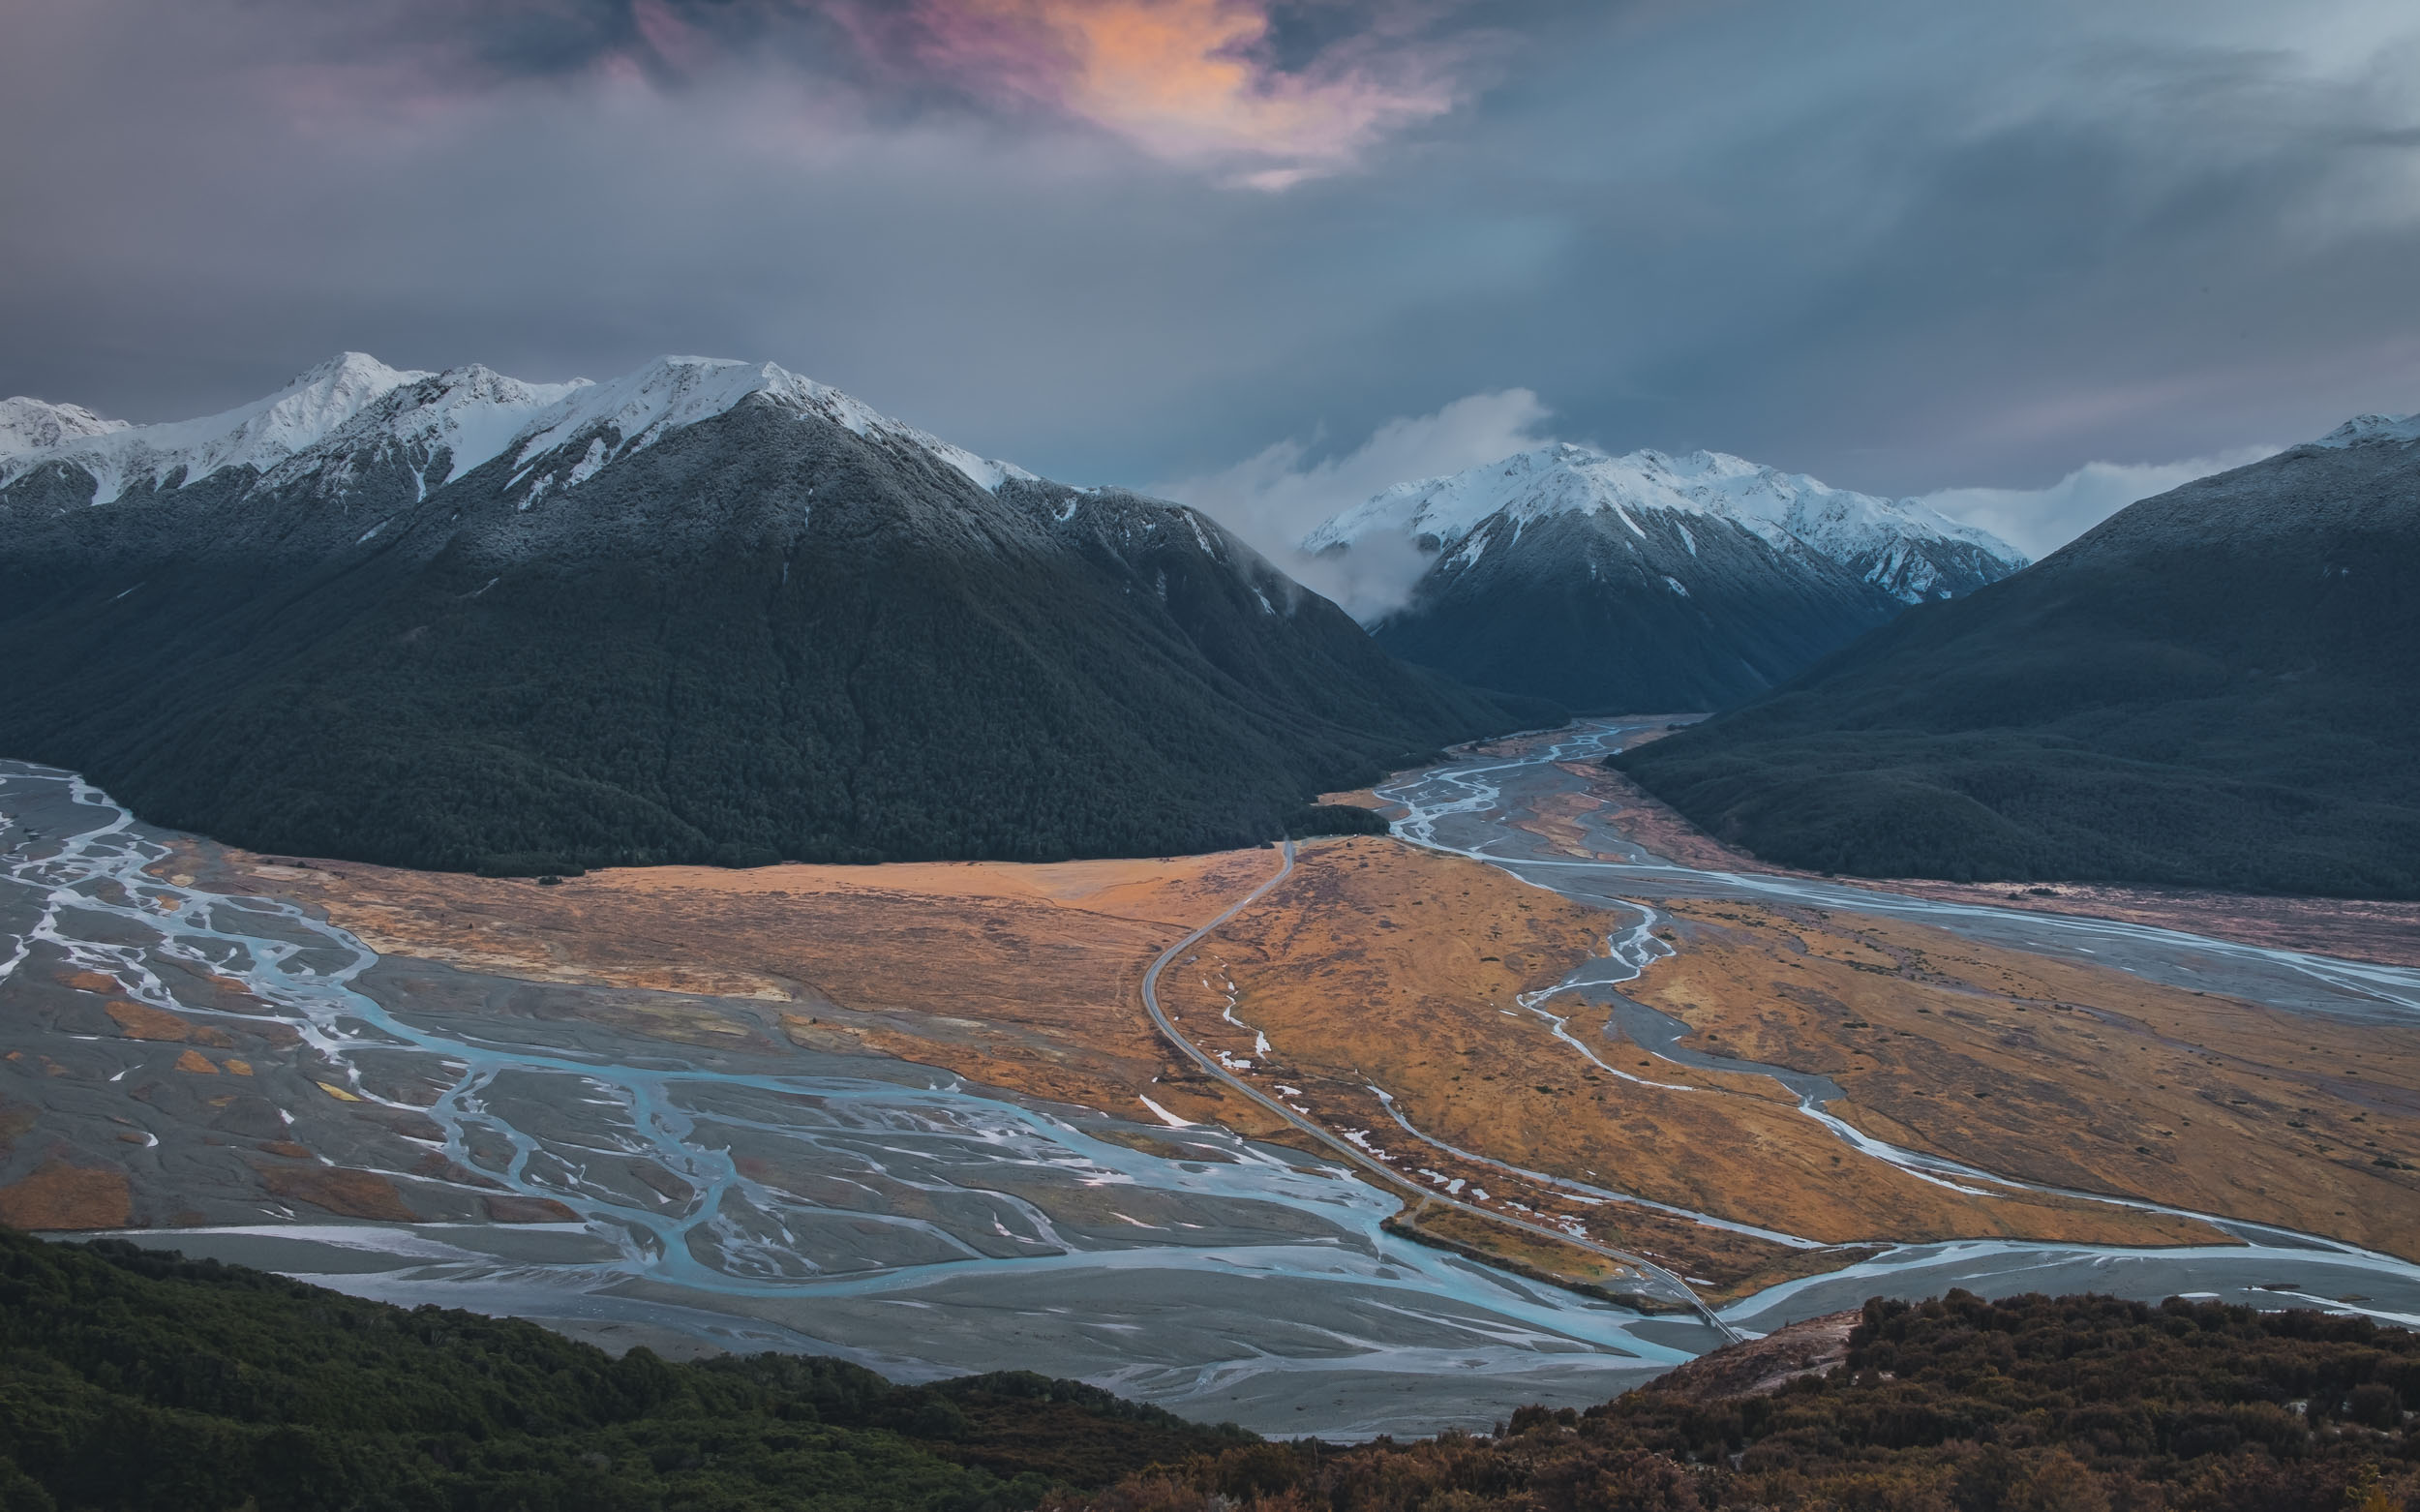 48H OF ARTHUR'S PASS -